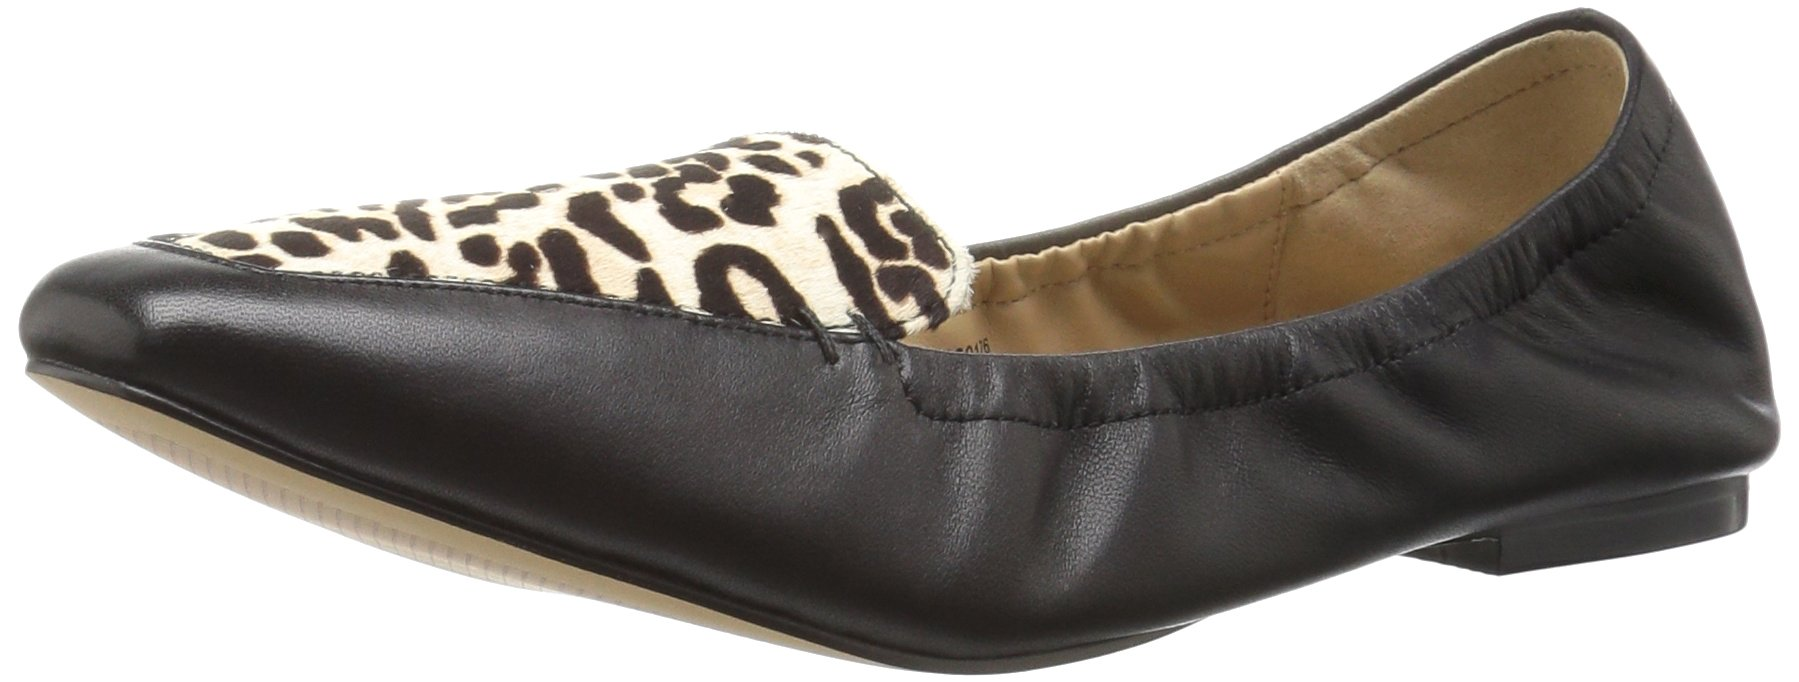 The Fix Women's Zaylie Scrunch Loafer Flat, Black/Snow Leopard, 7 B US